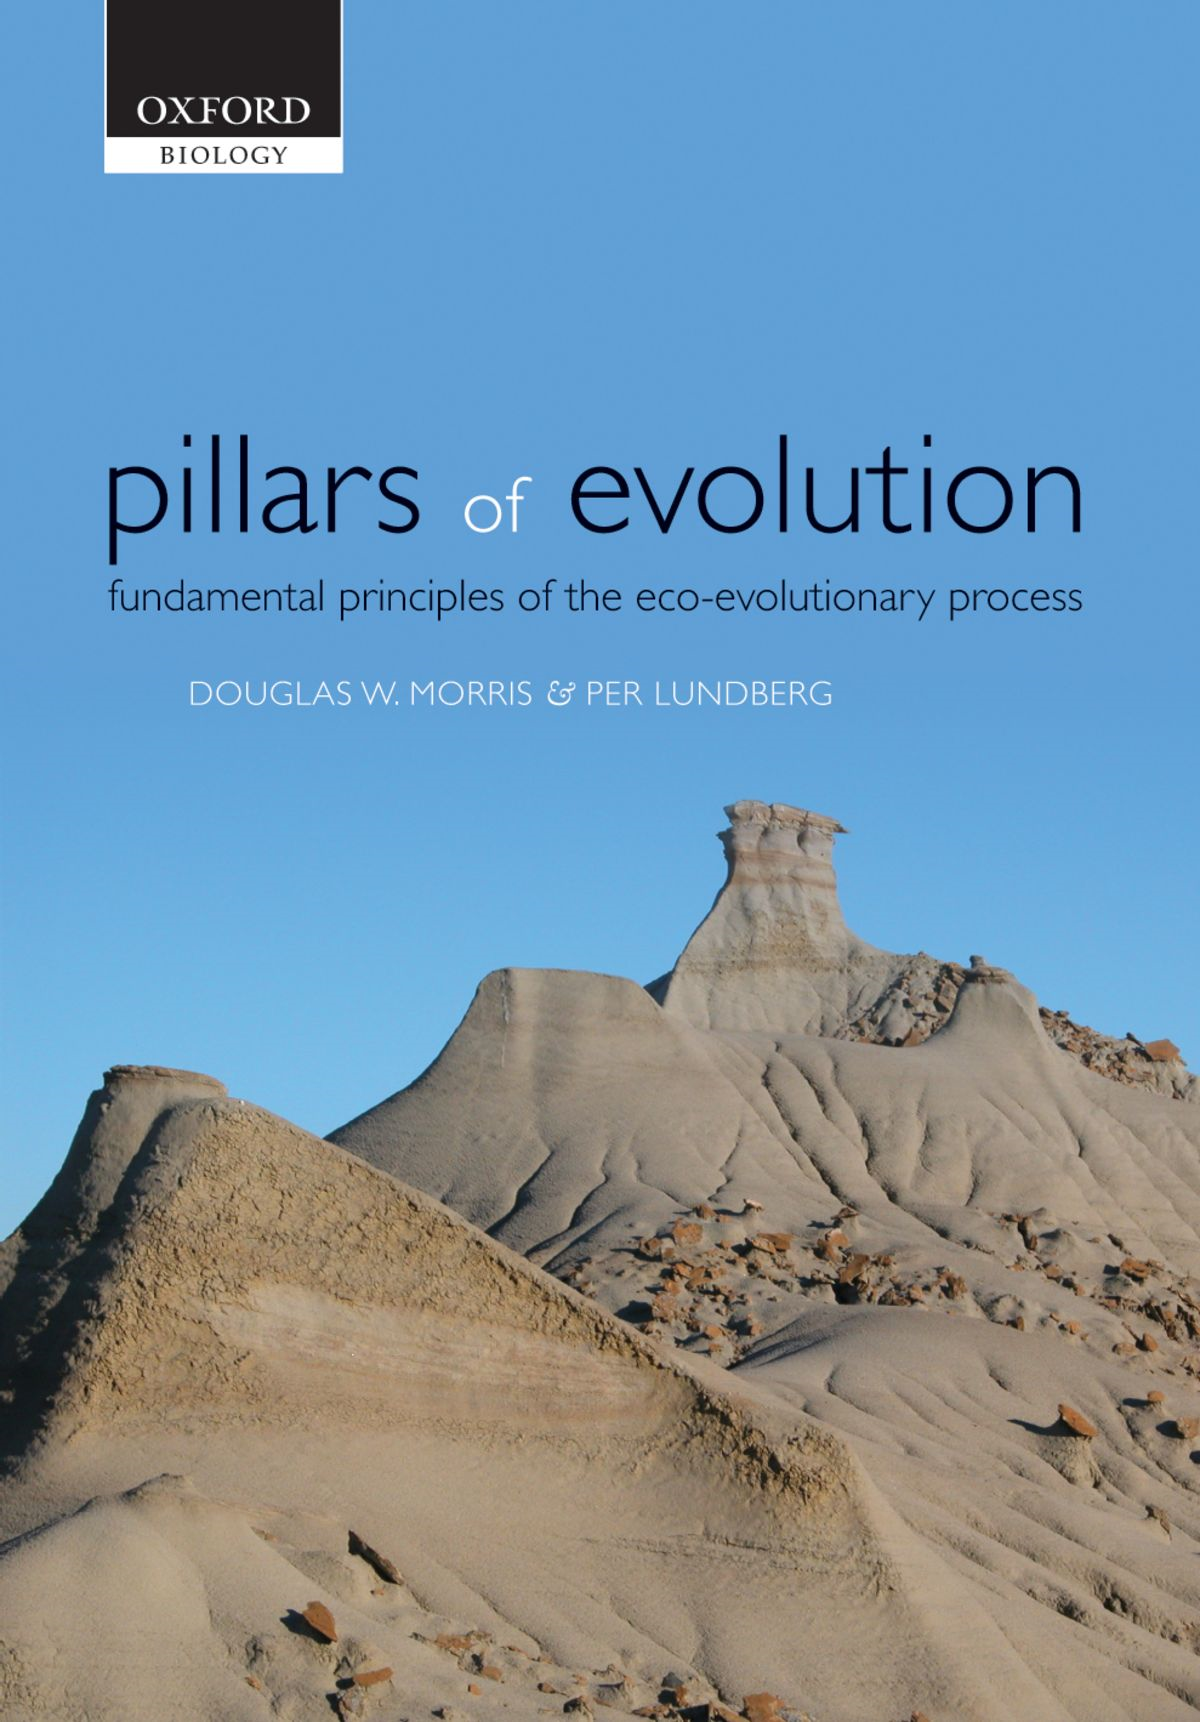 Pillars of Evolution: Fundamental principles of the eco-evolutionary process